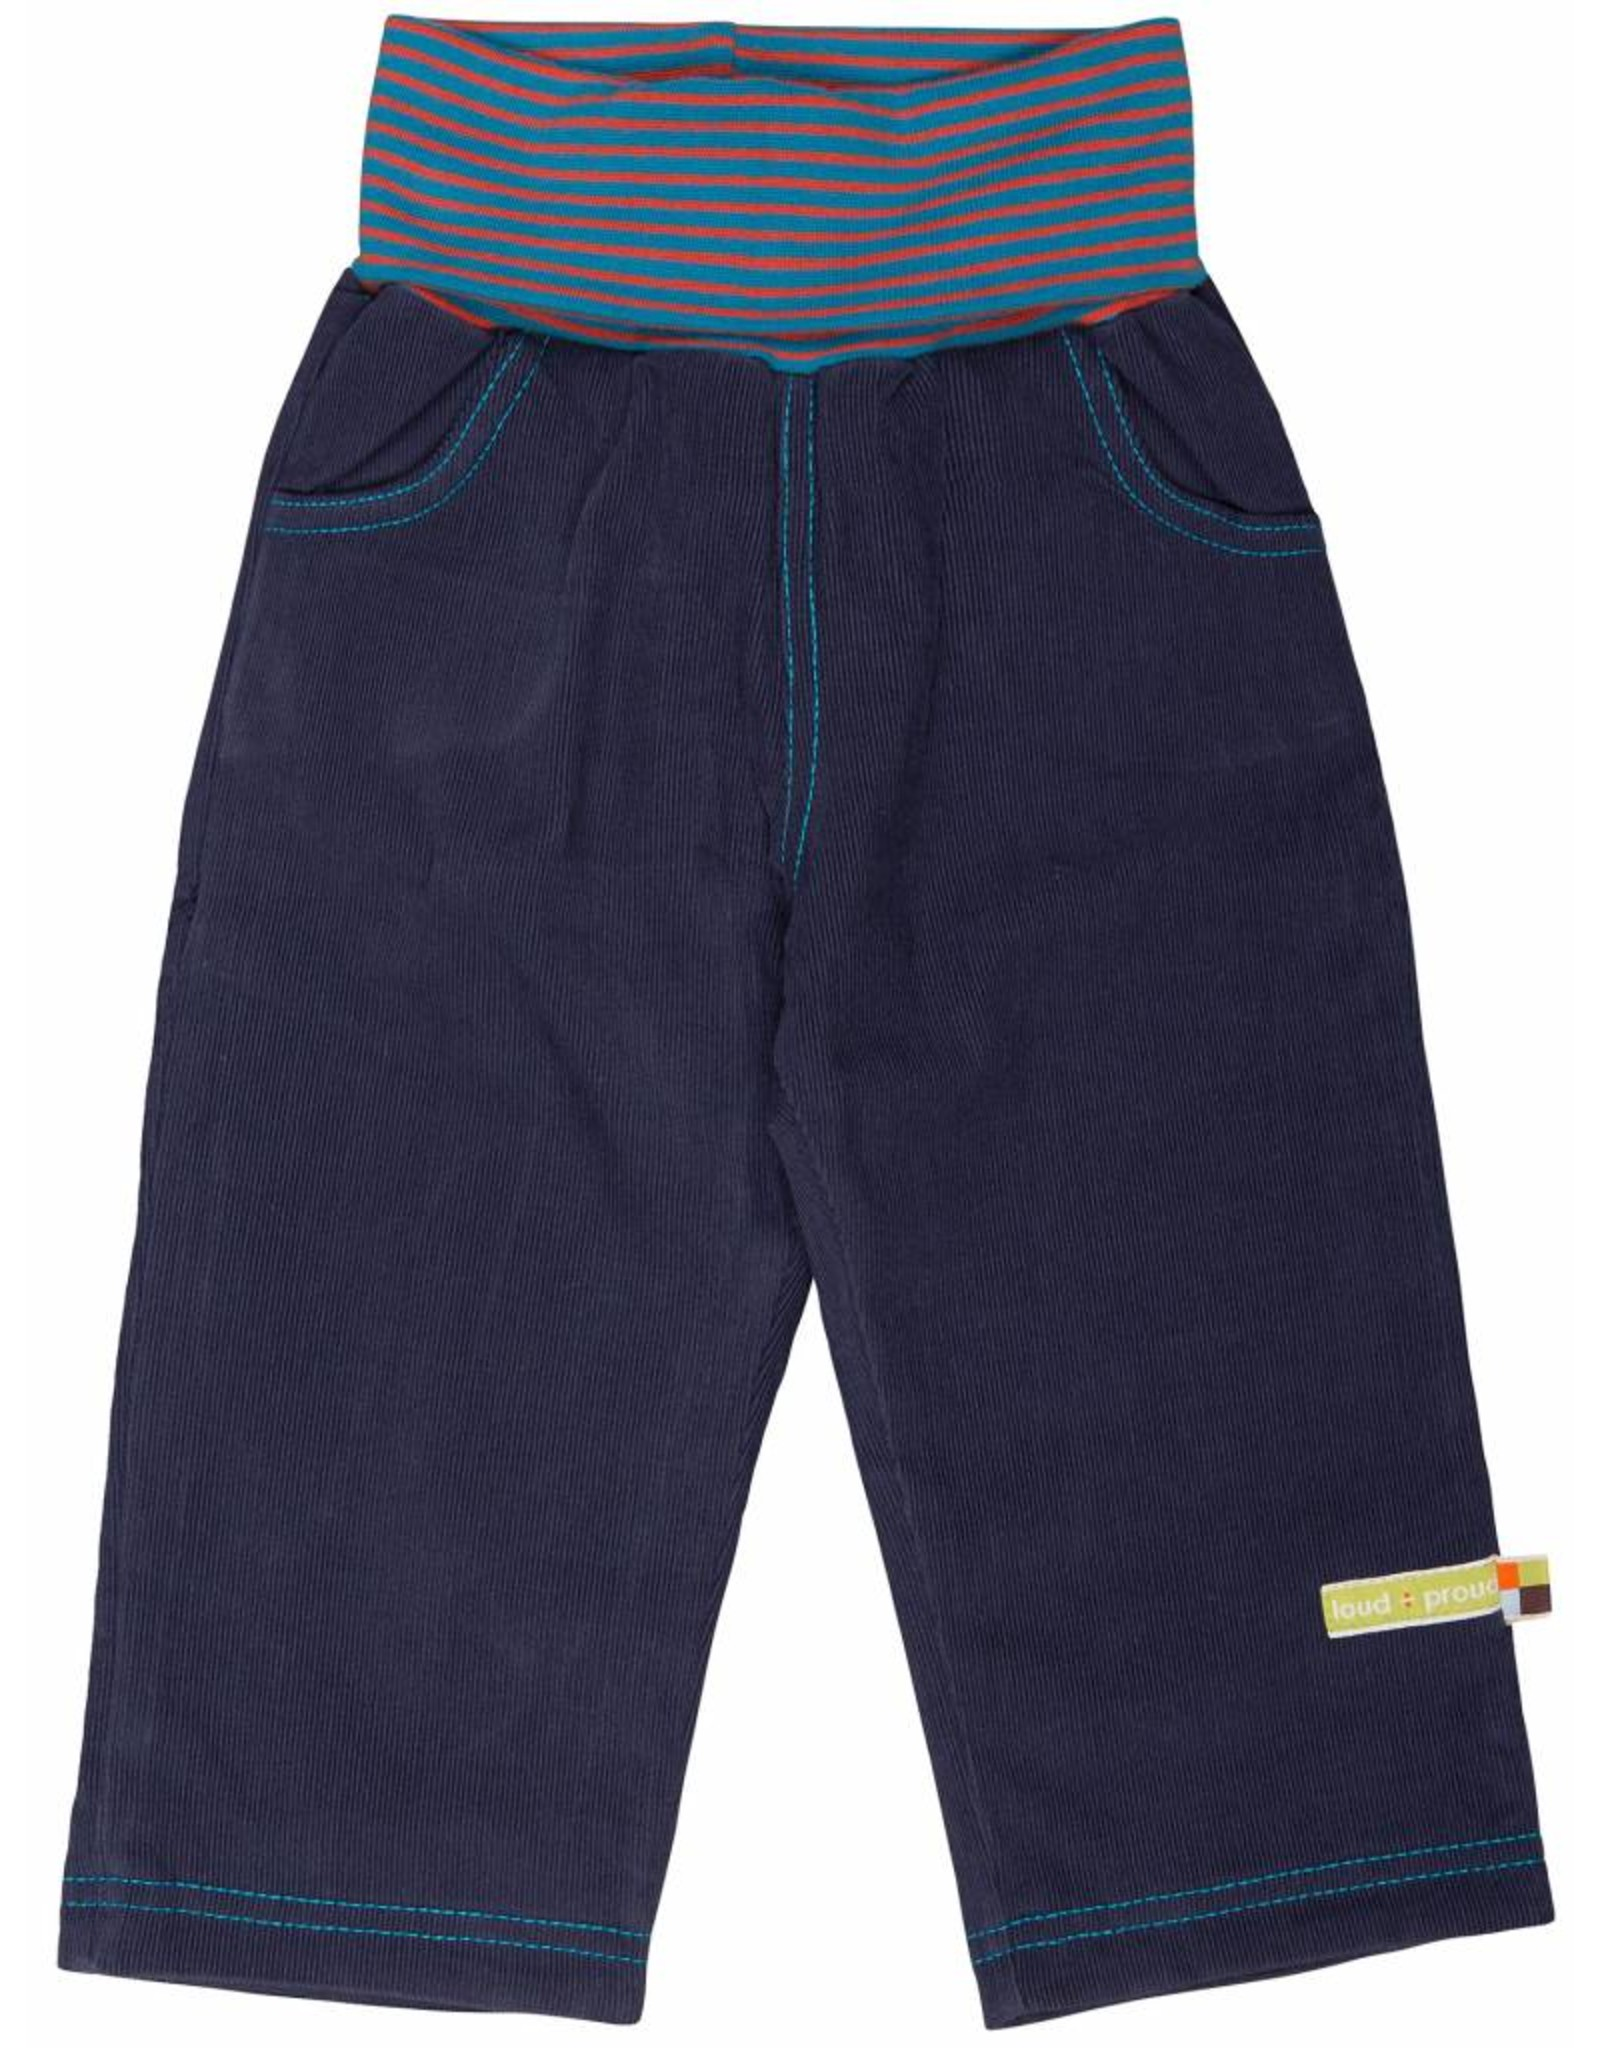 loud+proud Children's trousers - blue corduray